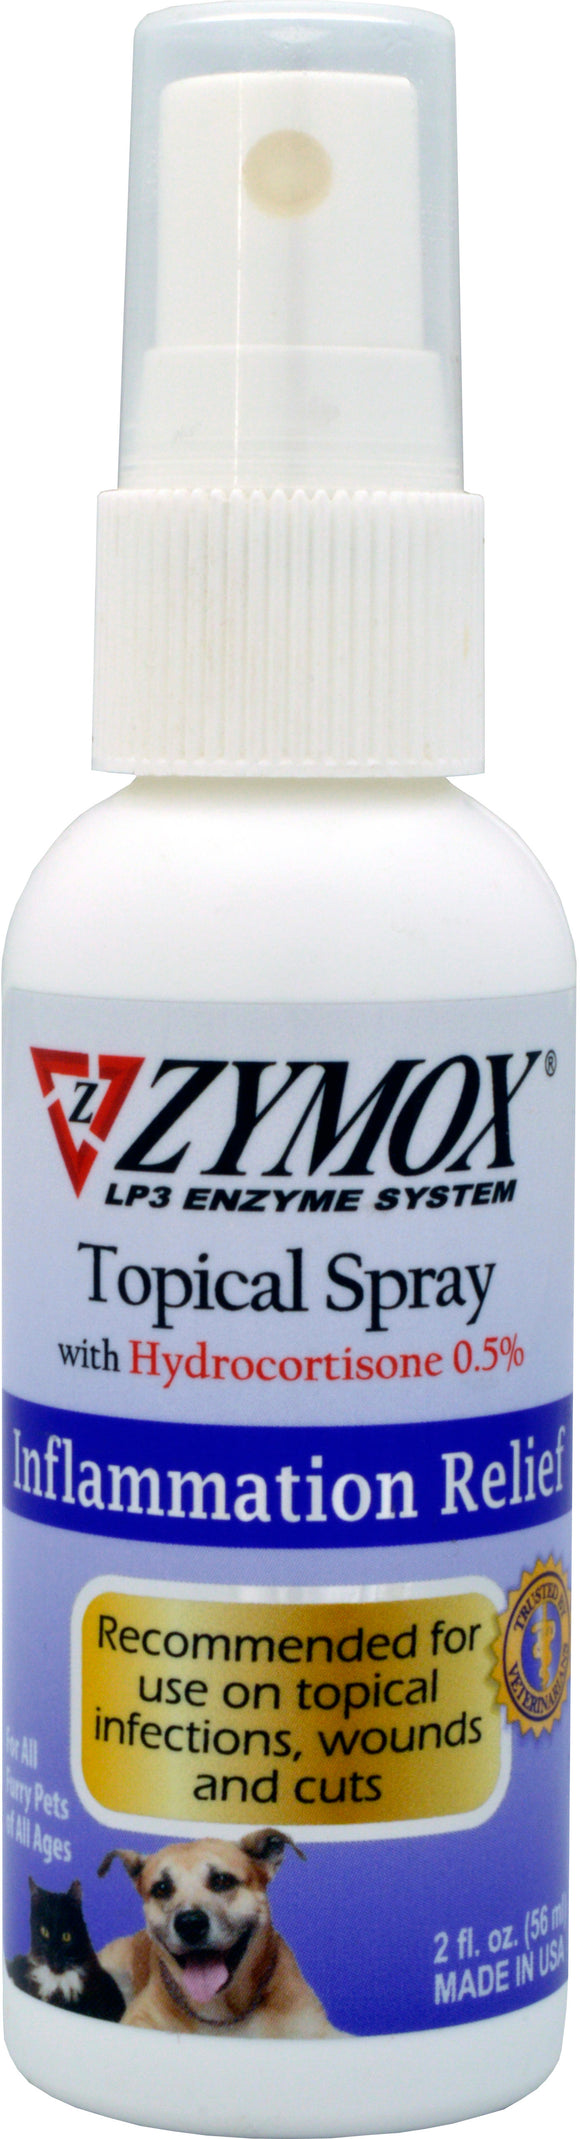 Zymox Topical Spray with 0.5% Hydorcortisone for Hot Spots & Skin Infections for Cat & Dog 2 Oz